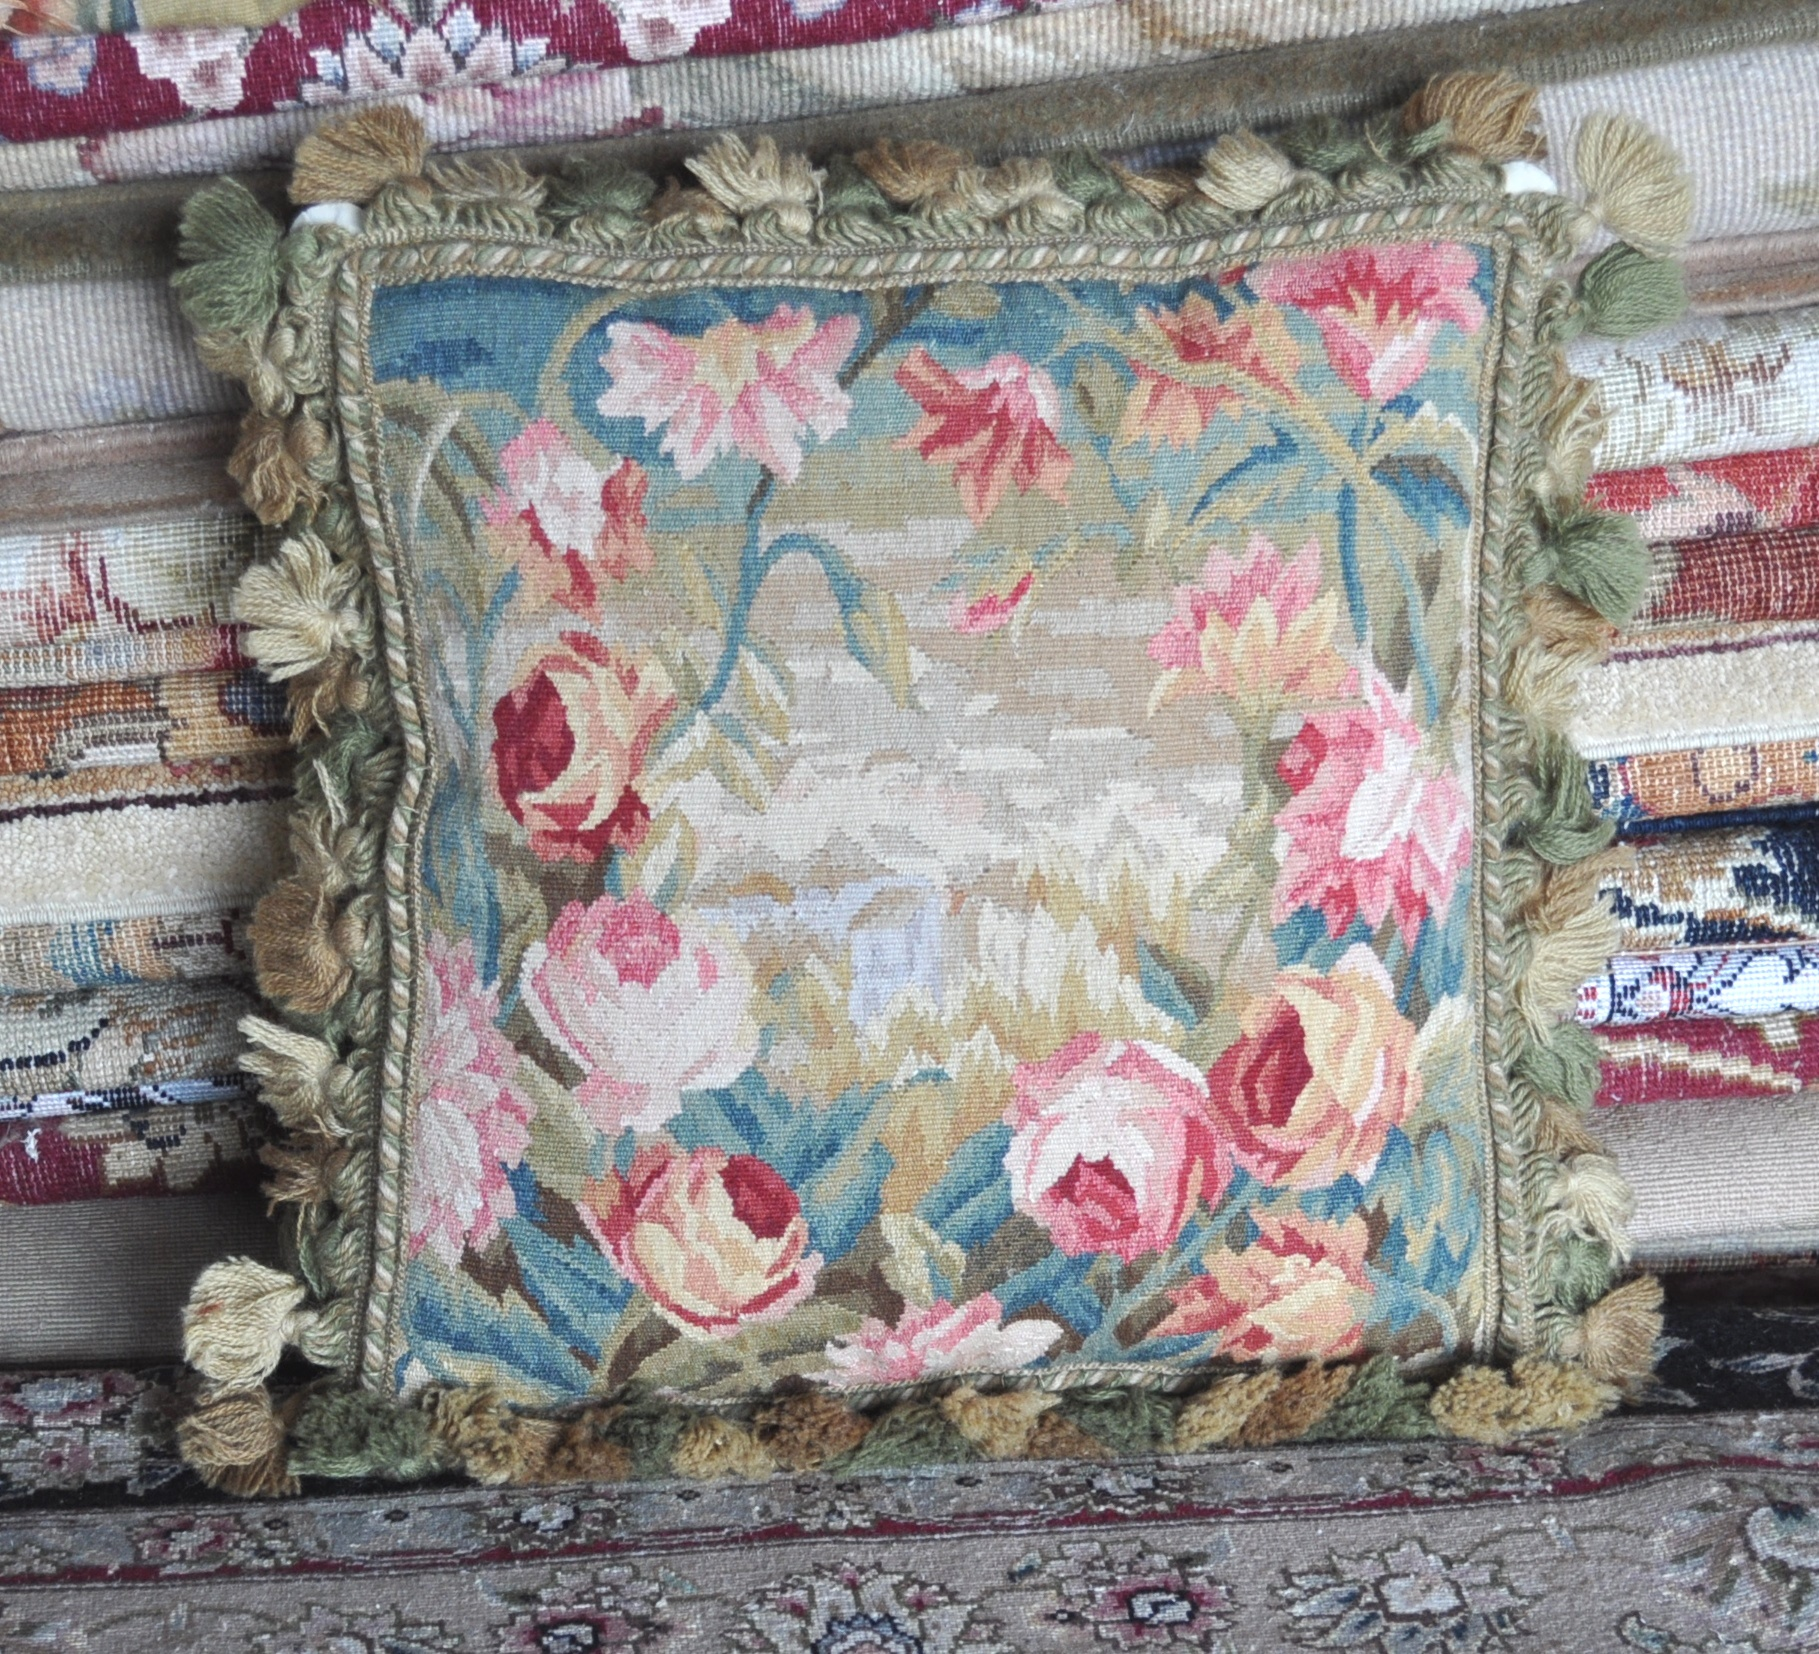 17″ x 17″ Antique French Reproduction Roses Gobelins Tapestry Weave Wool Aubusson Cushion Cover / Pillow Case 12980903